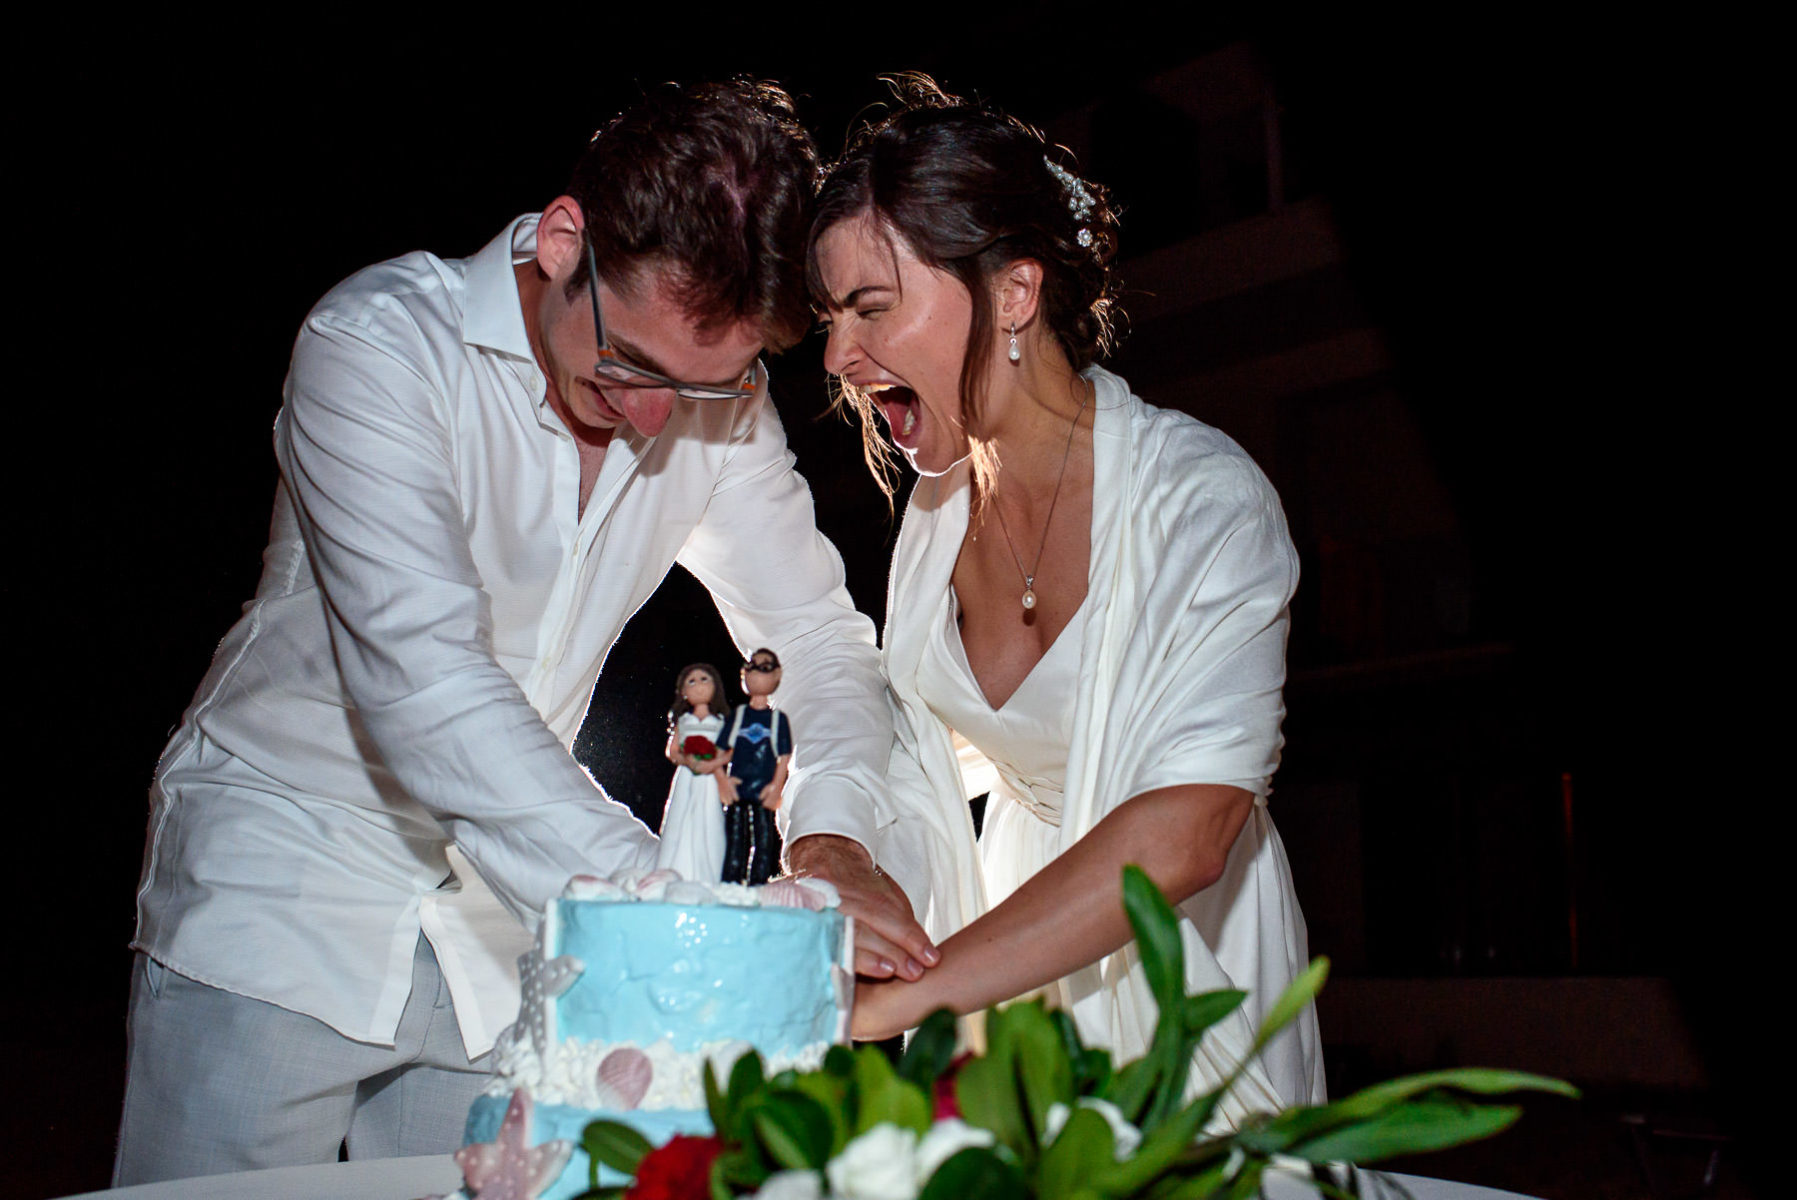 fun cake cutting at destination weddng in Greece